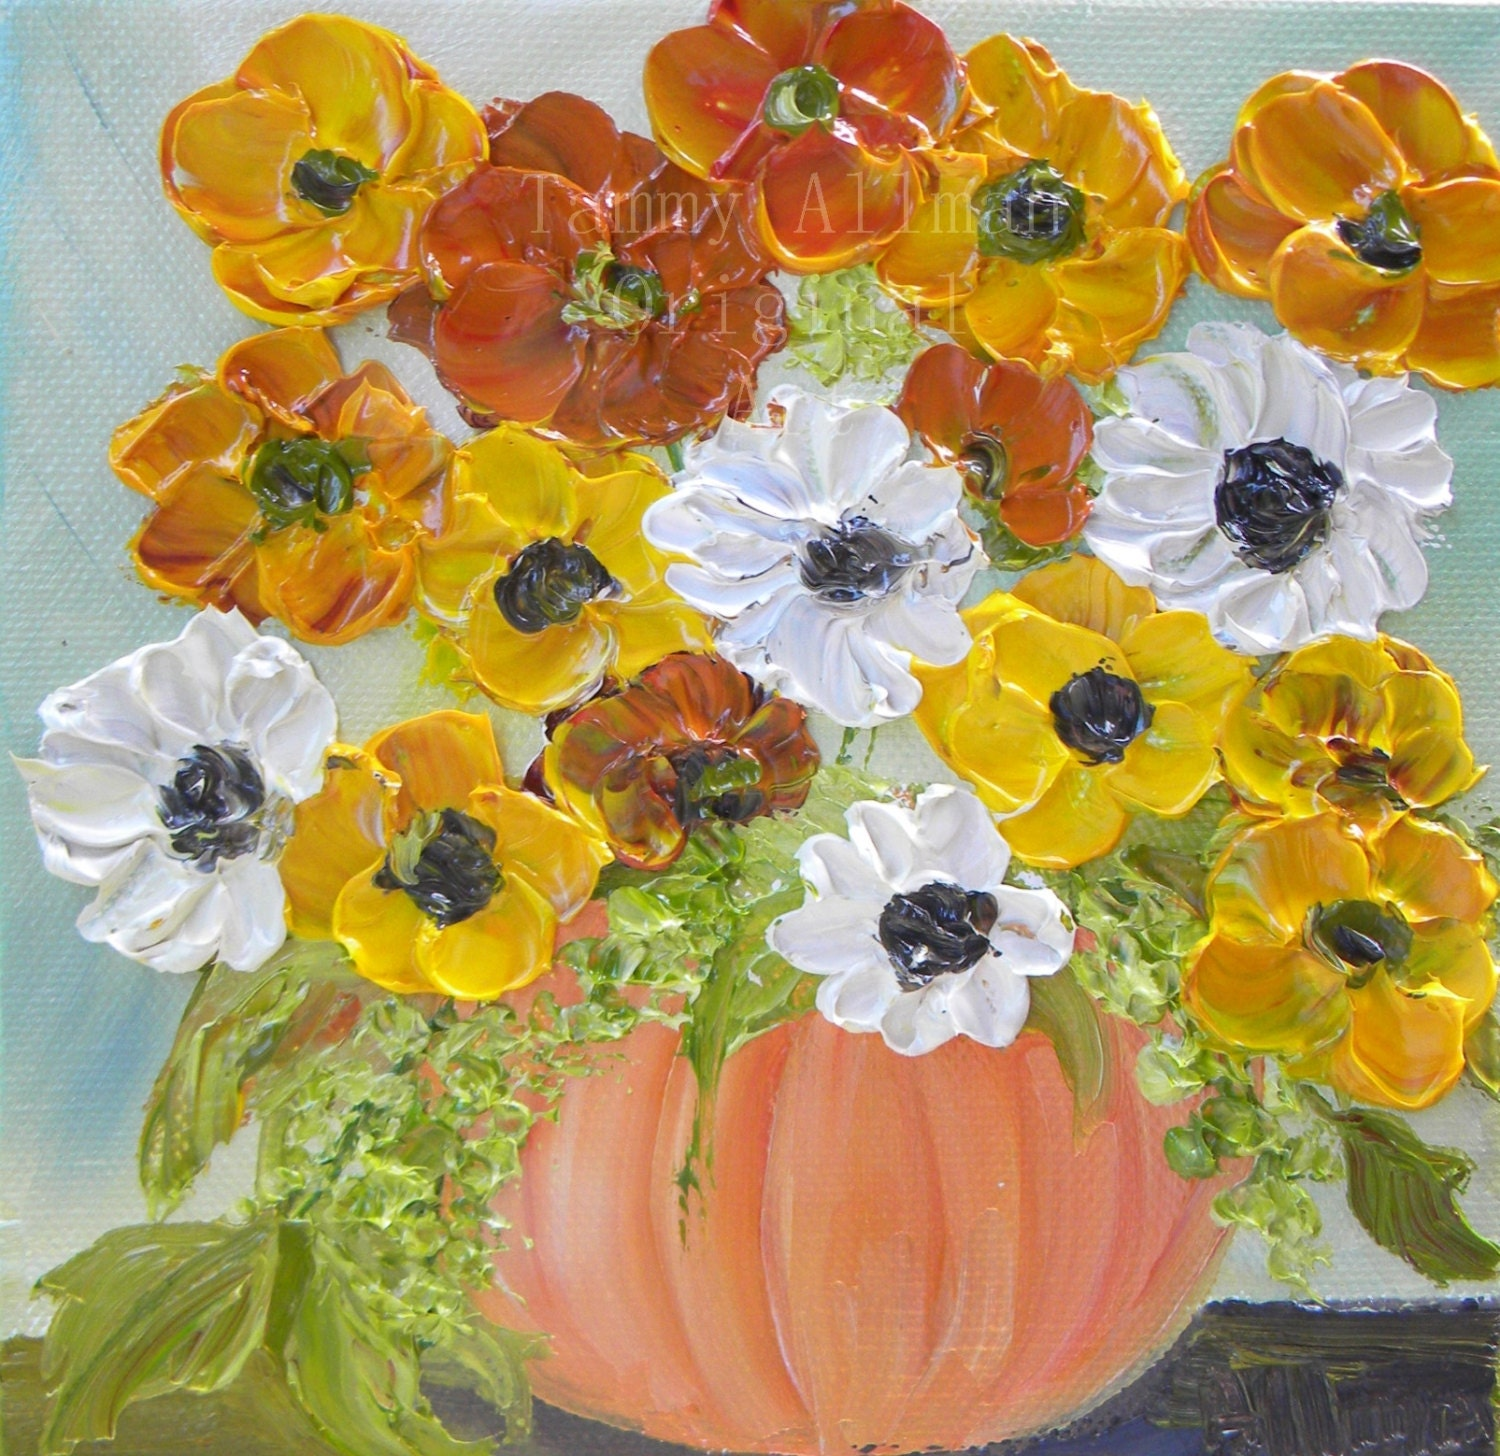 Original Floral Painting Pumpkin Floral By Kenziescottage: flower painted pumpkins